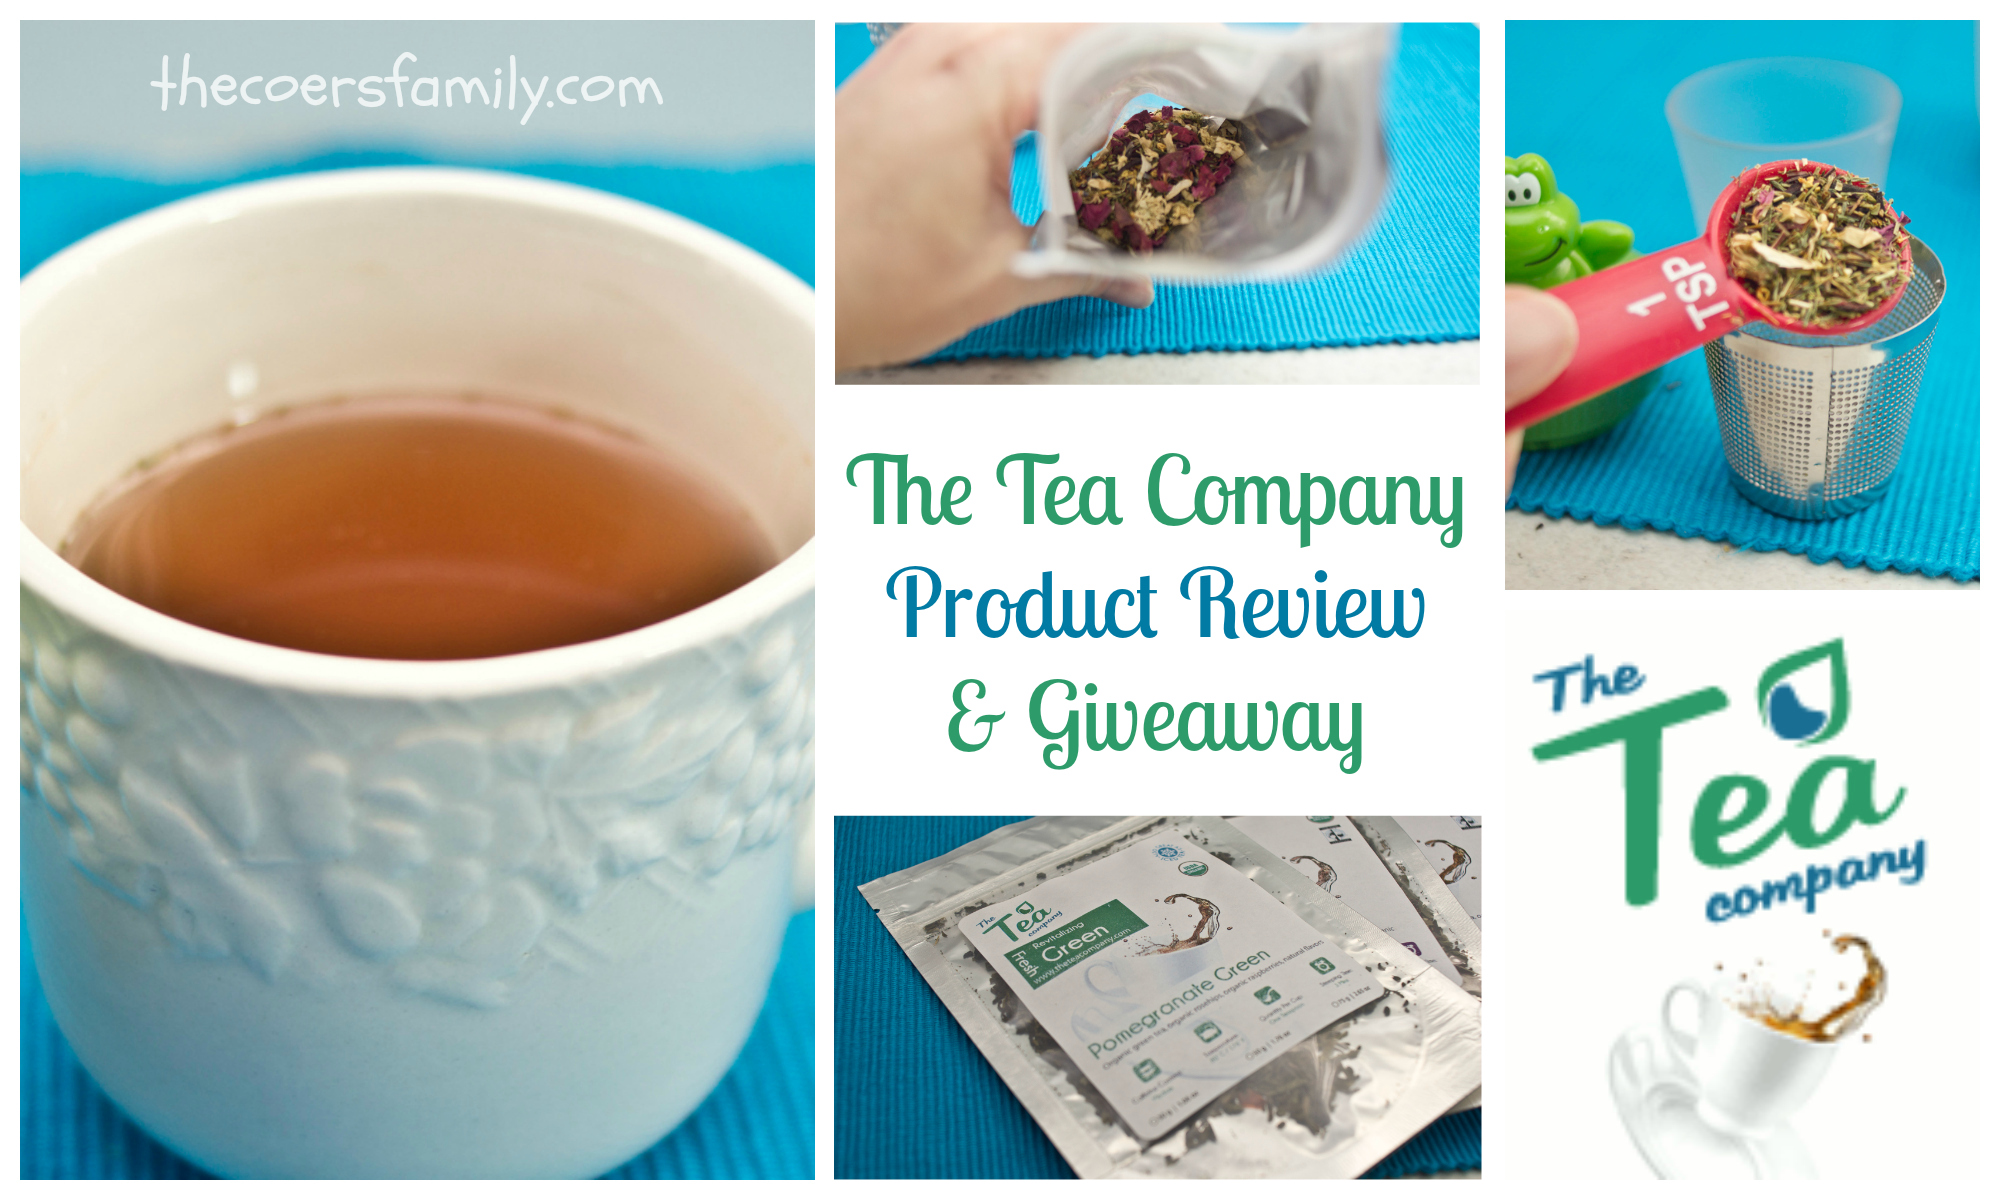 Product Review and Giveaway: The Tea Company - The Coers Family